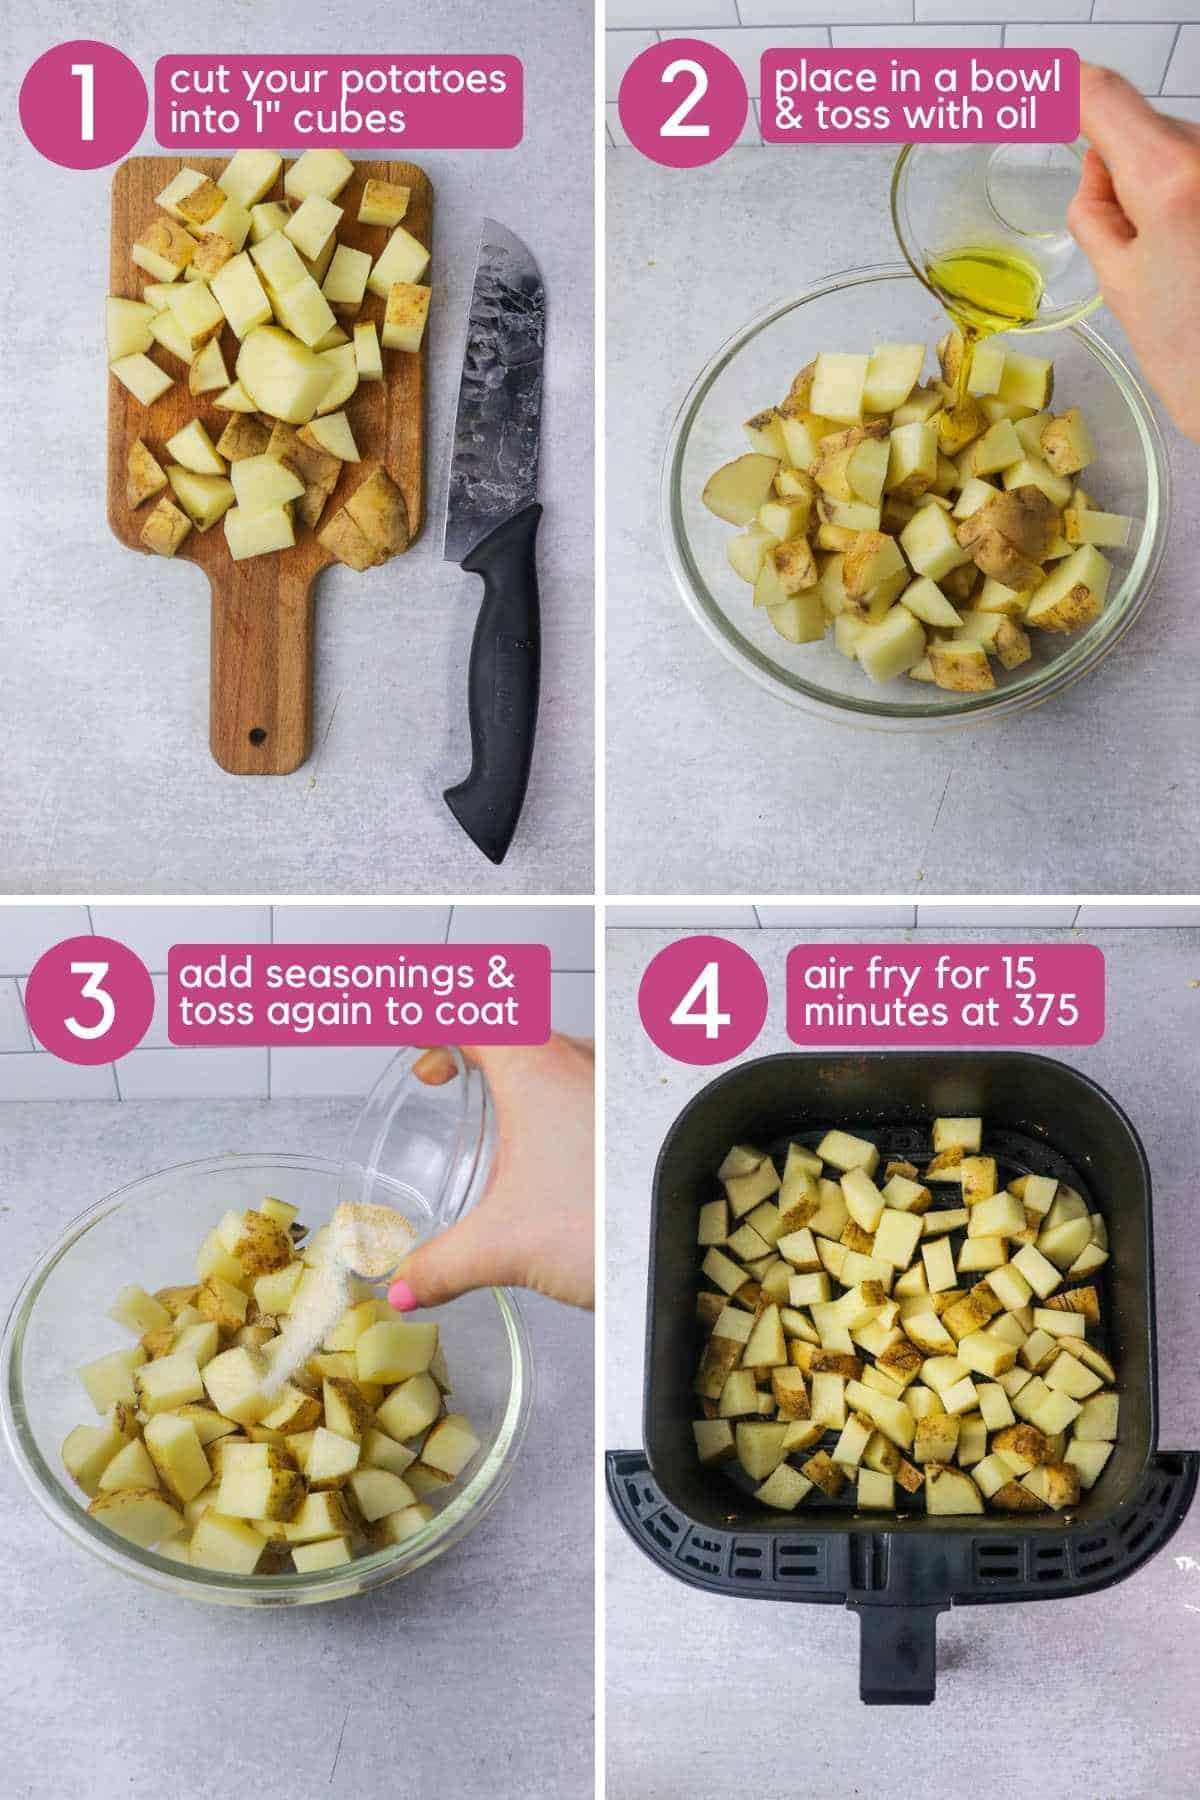 how to make air fryer potatoes.